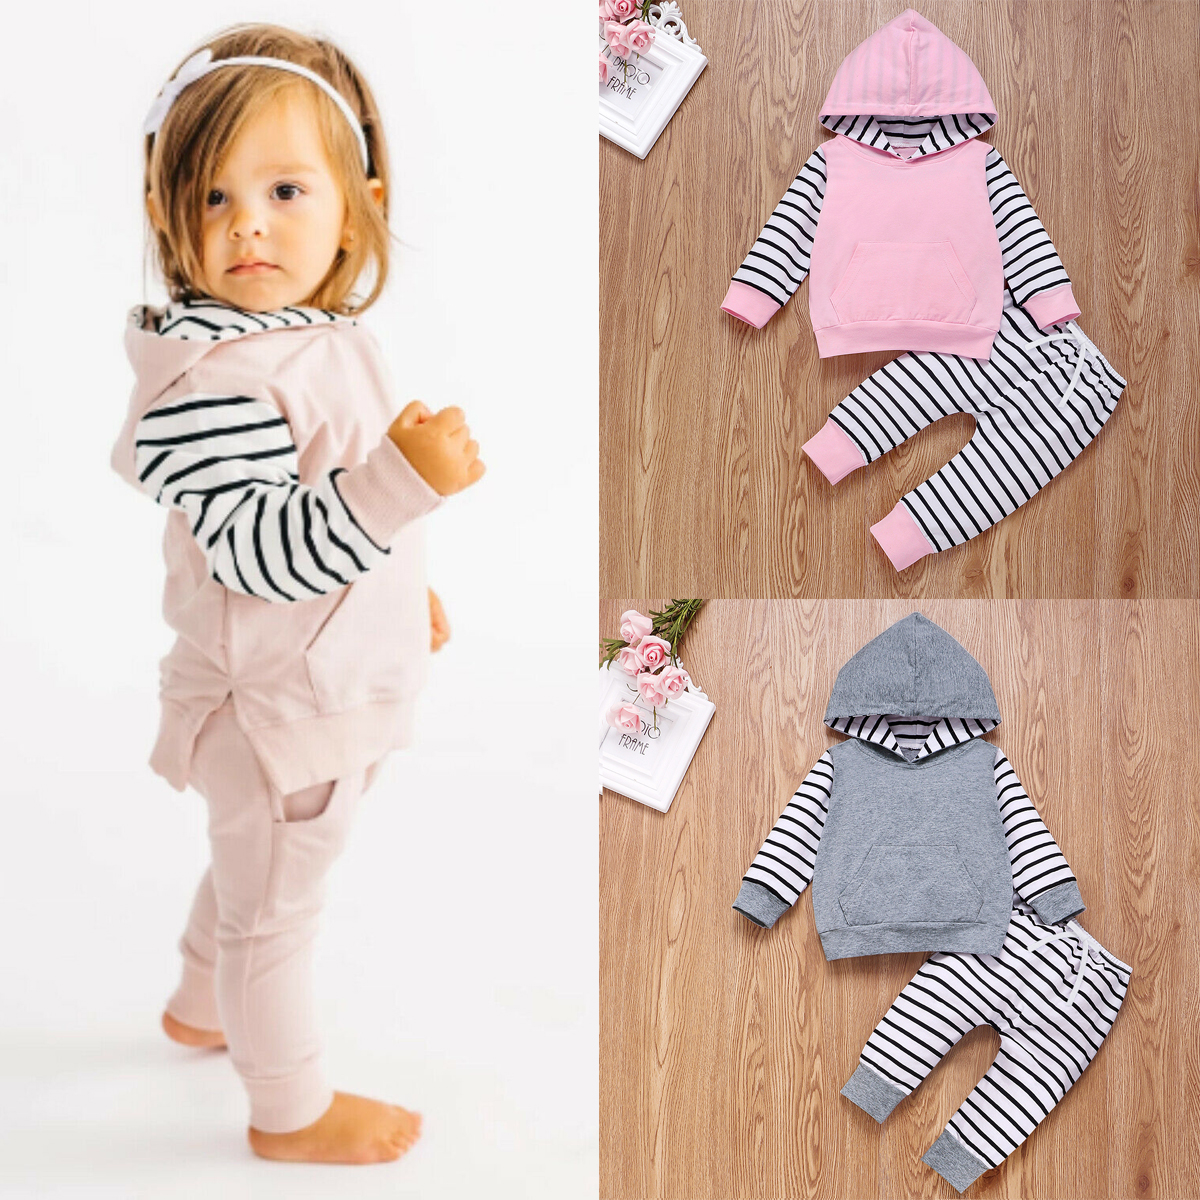 USA 2pcs Newborn Baby Girls Hoodie Hooded Sweater Tops+Pants Outfits Set Clothes